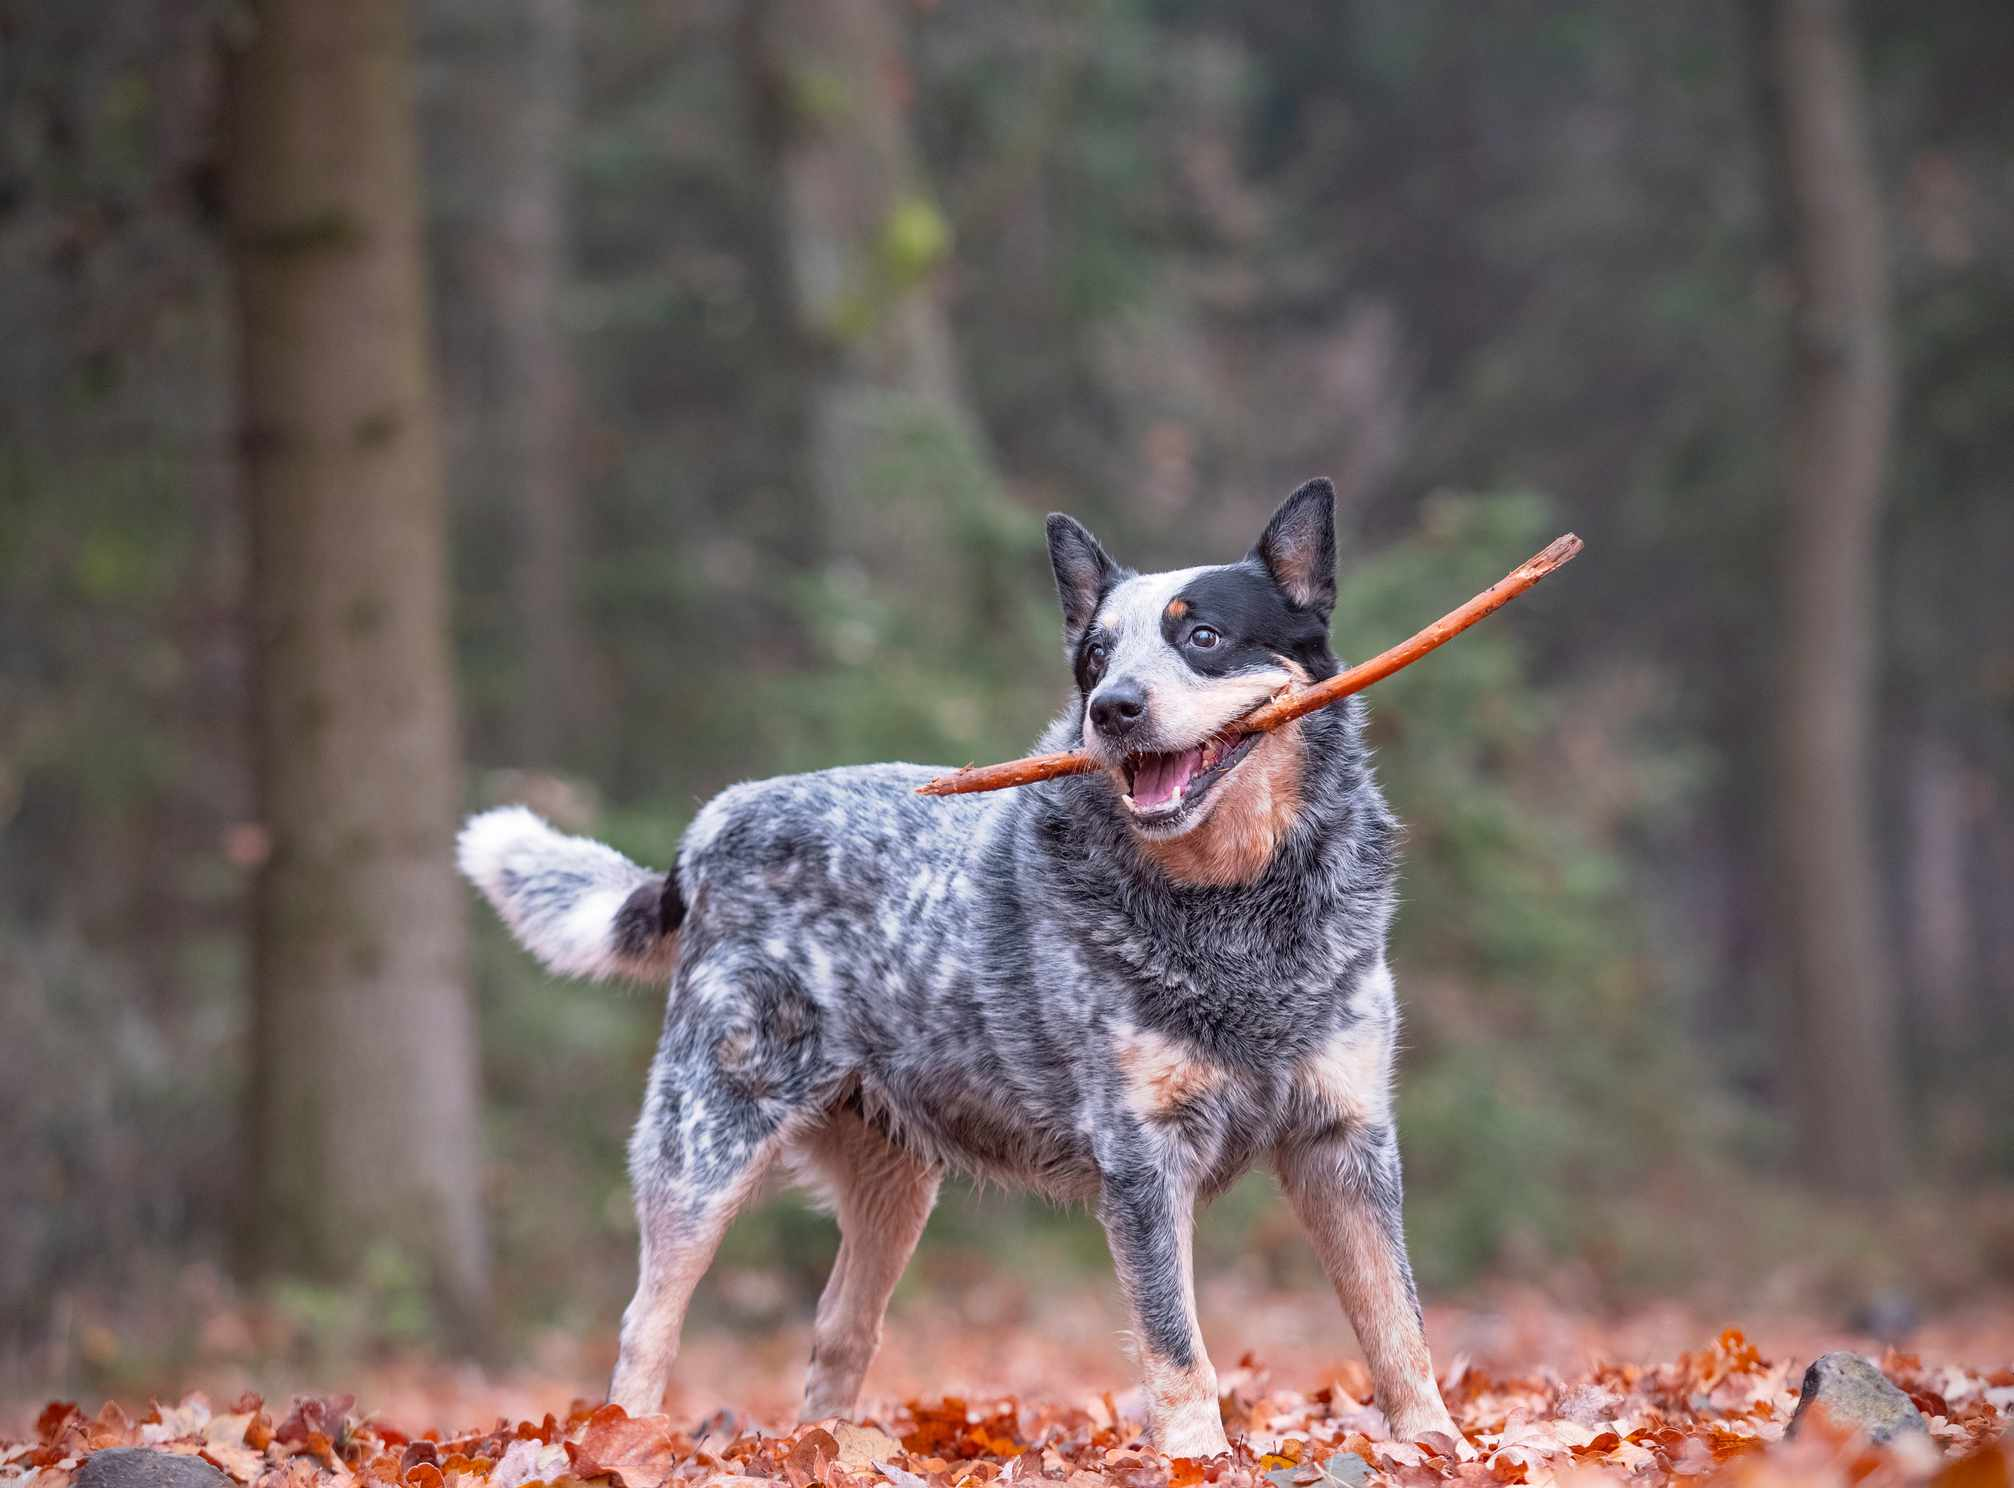 Australian cattle dog plays outside in fall weather holding large stick in mouth